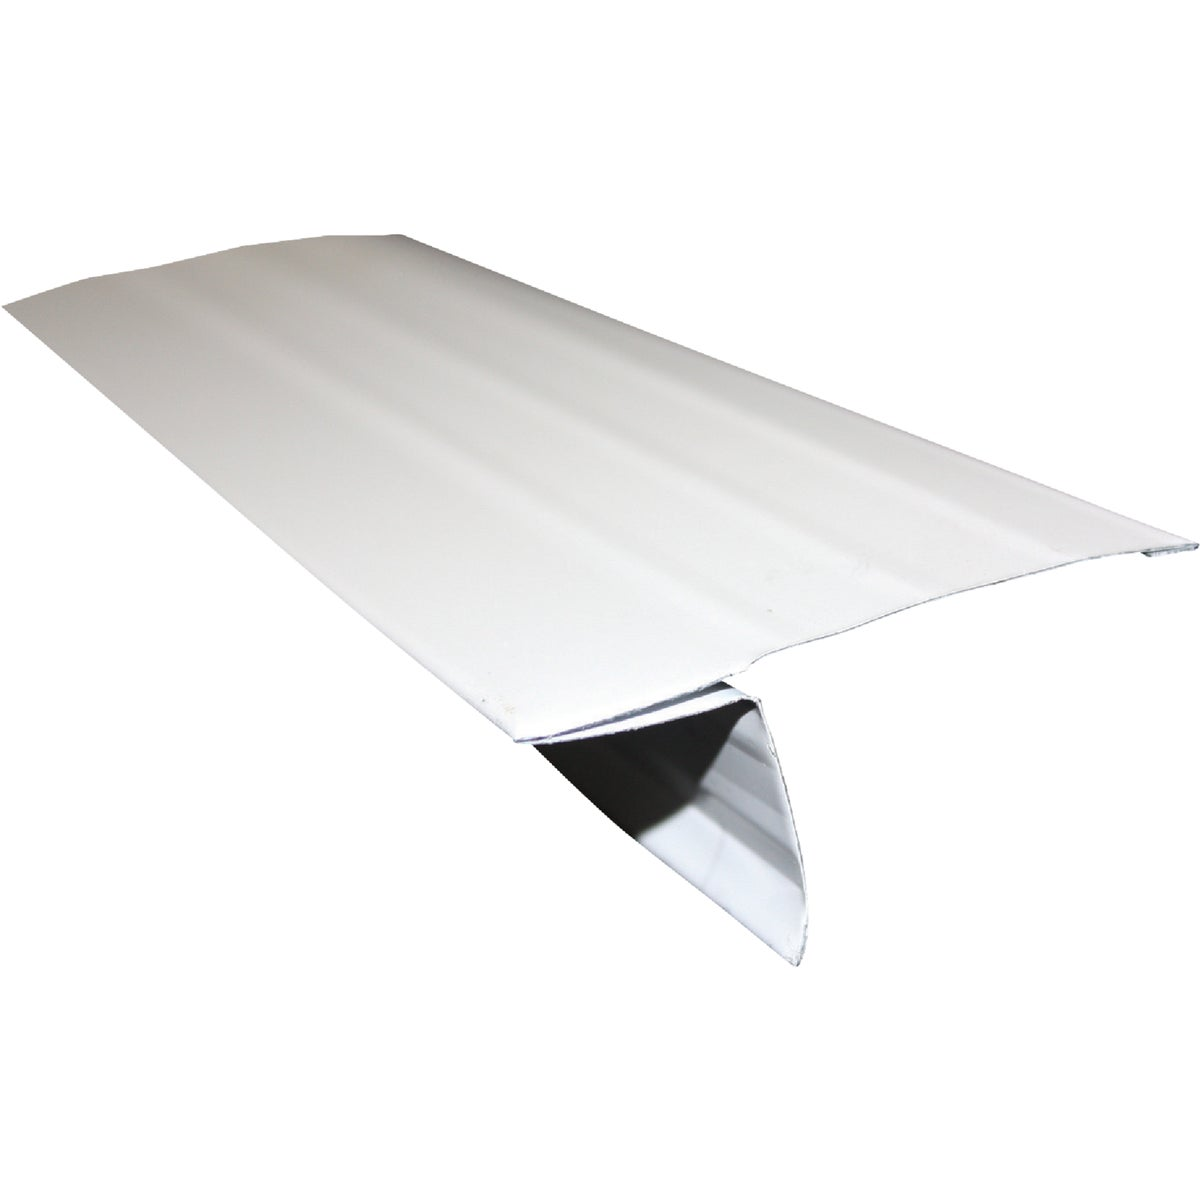 "5"" STYLE D WHT ROOF EDGE - 32416-WH20 by Klauer Mfg Co"